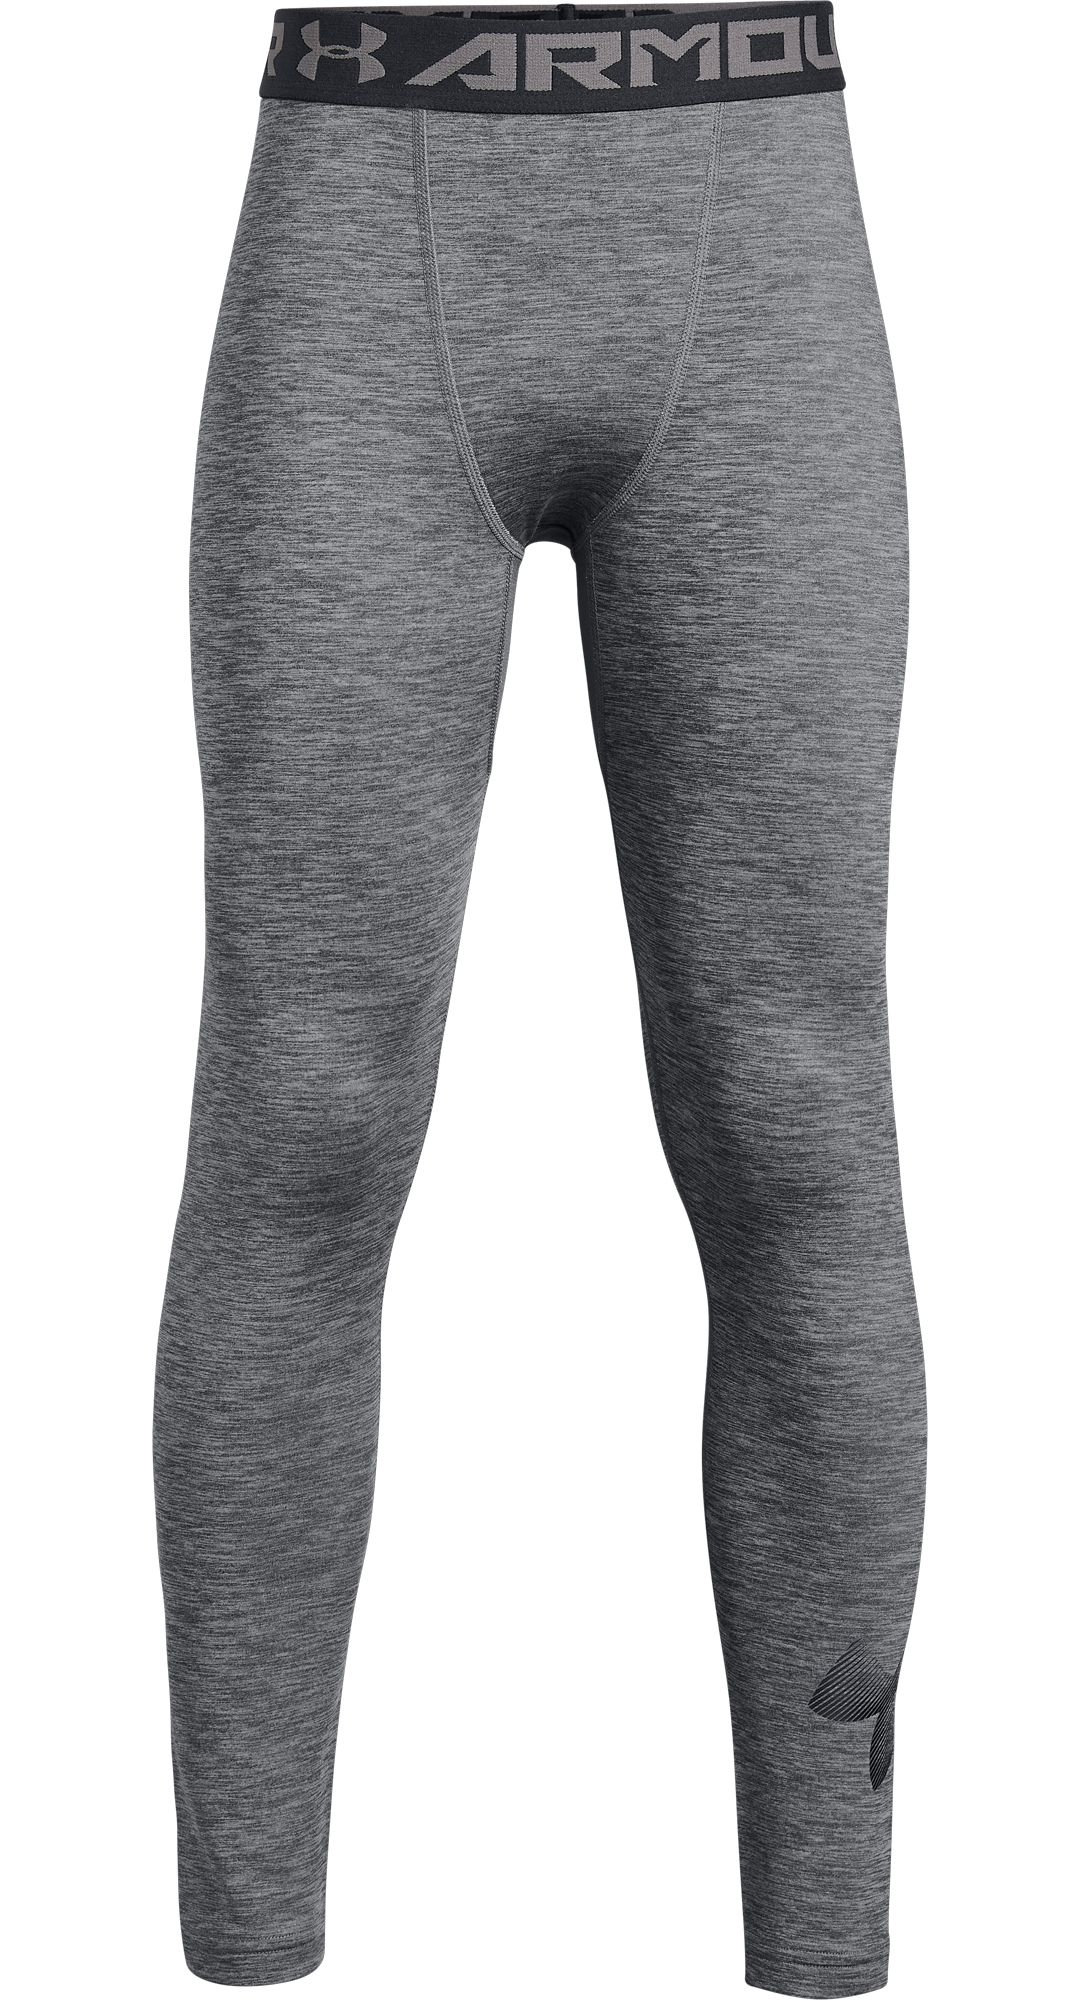 f2bb00ce72 Under Armour Boys' ColdGear Armour Leggings | DICK'S Sporting Goods